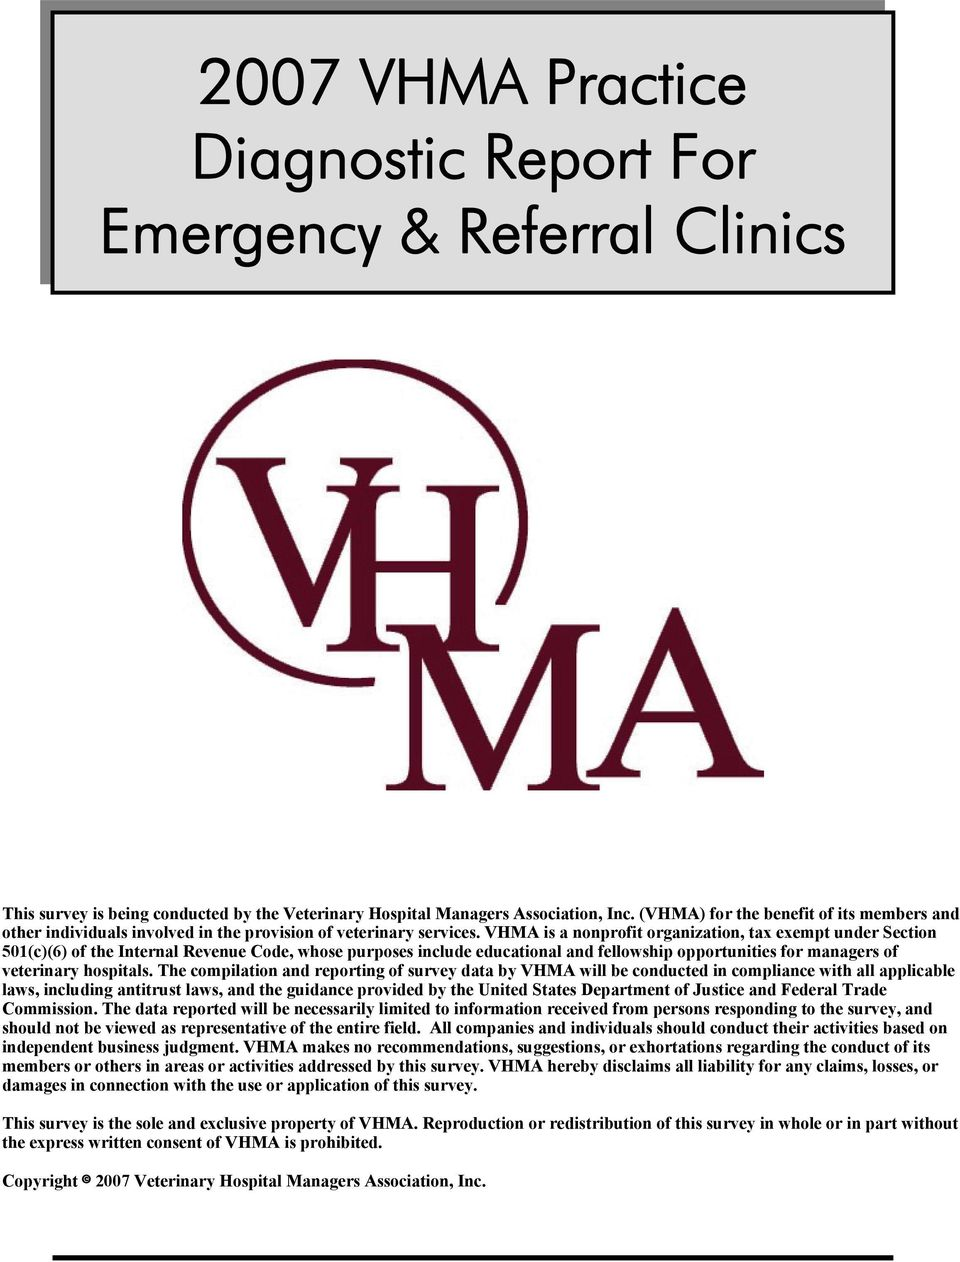 VHMA is a nonprofit organization, tax exempt under Section 501(c)(6) of the Internal Revenue Code, whose purposes include educational and fellowship opportunities for managers of veterinary hospitals.